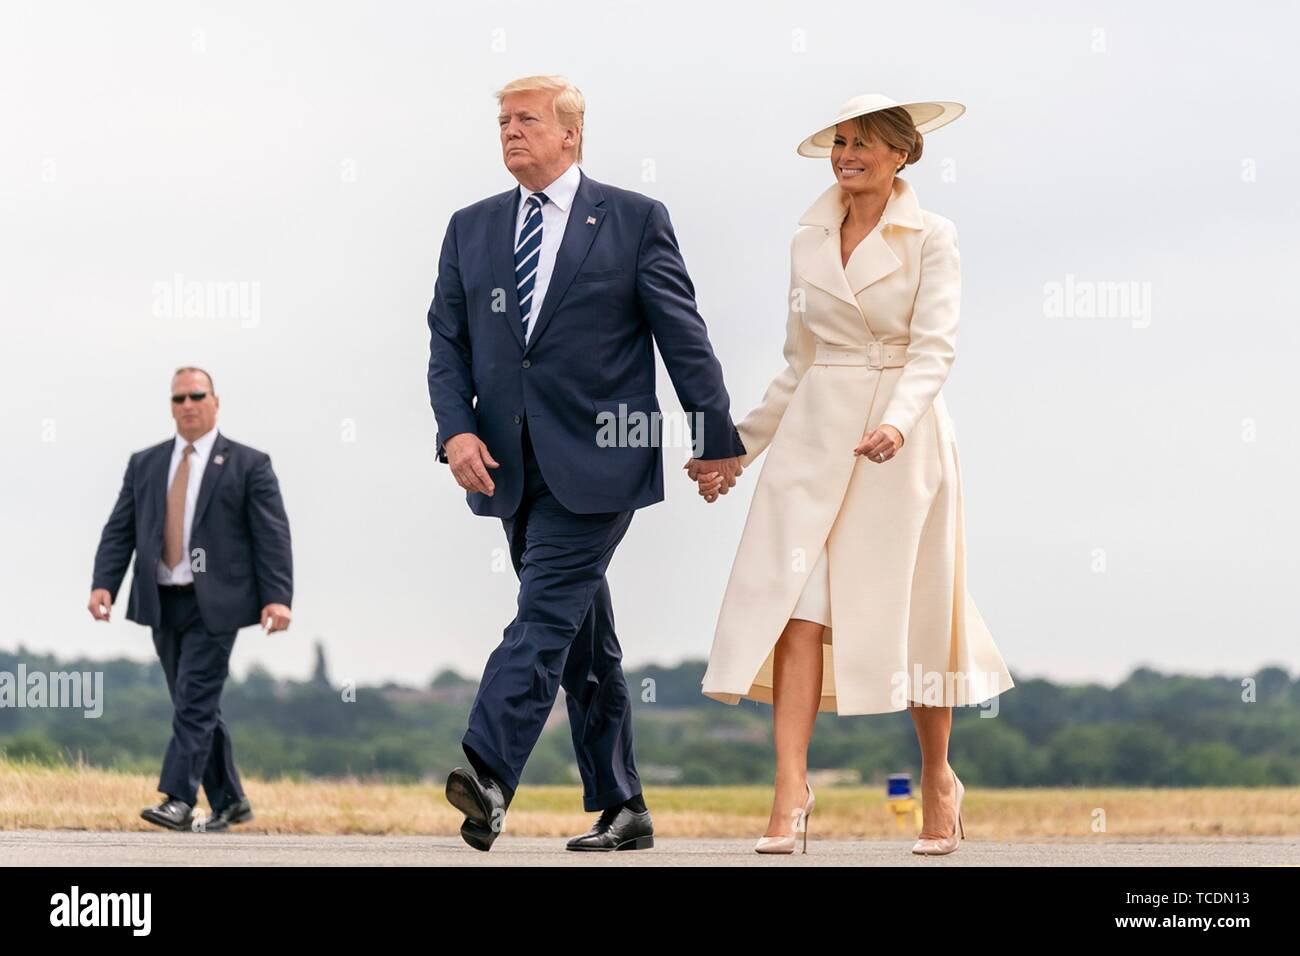 U.S President Donald Trump and First Lady Melania Trump walk to Air Force One after landing aboard Marine One at Southampton Airport June 5, 2019 in Southhampton, England. The first couple are departing to spend the night at the presidents golf resort in Doonbeg, Ireland. - Stock Image